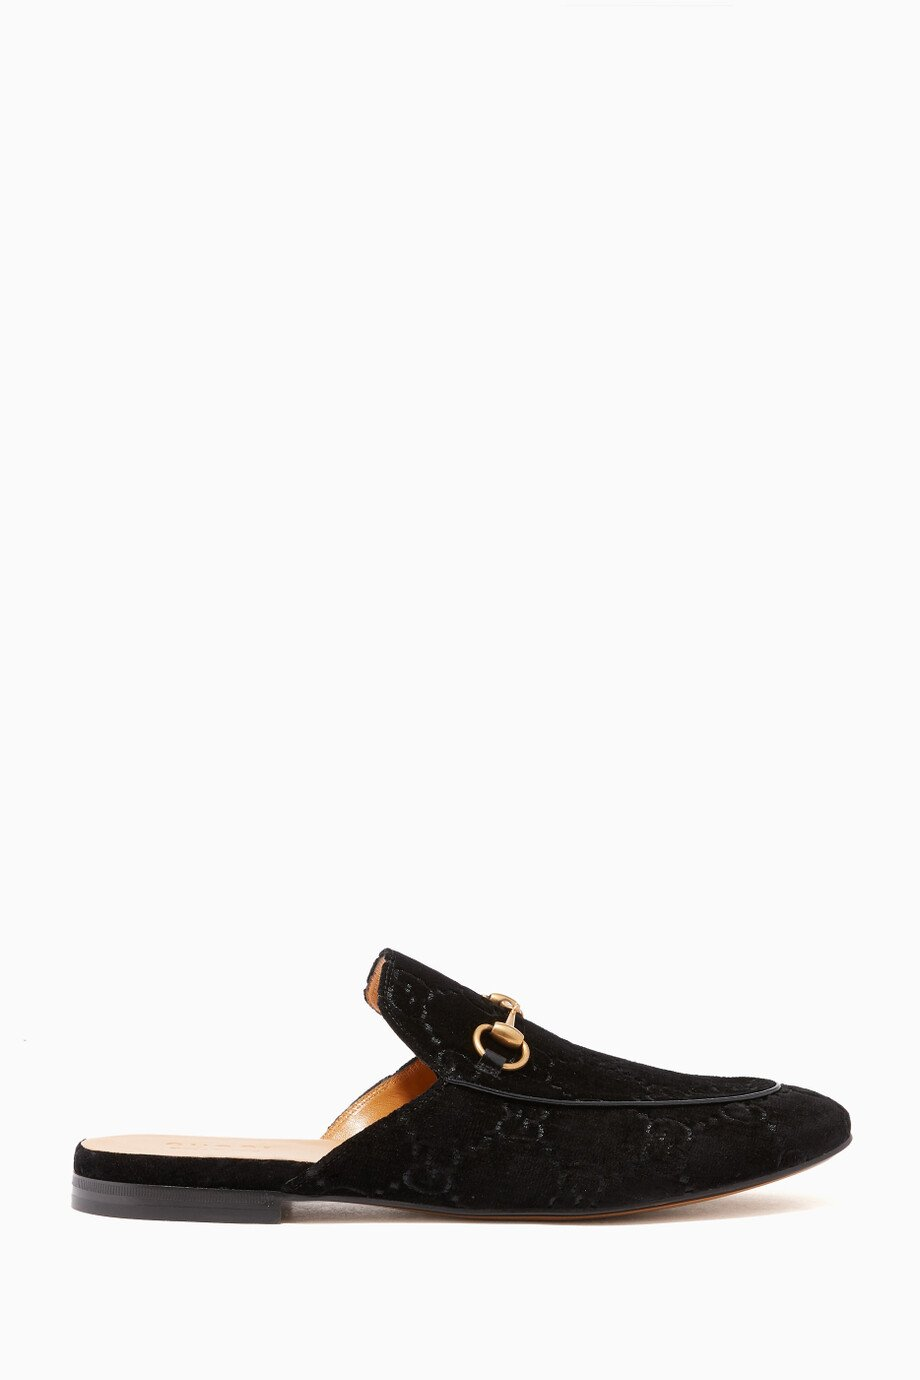 d6ac0155b Shop Gucci Black Black Velvet Kings GG Horsebit Backless Loafers for ...